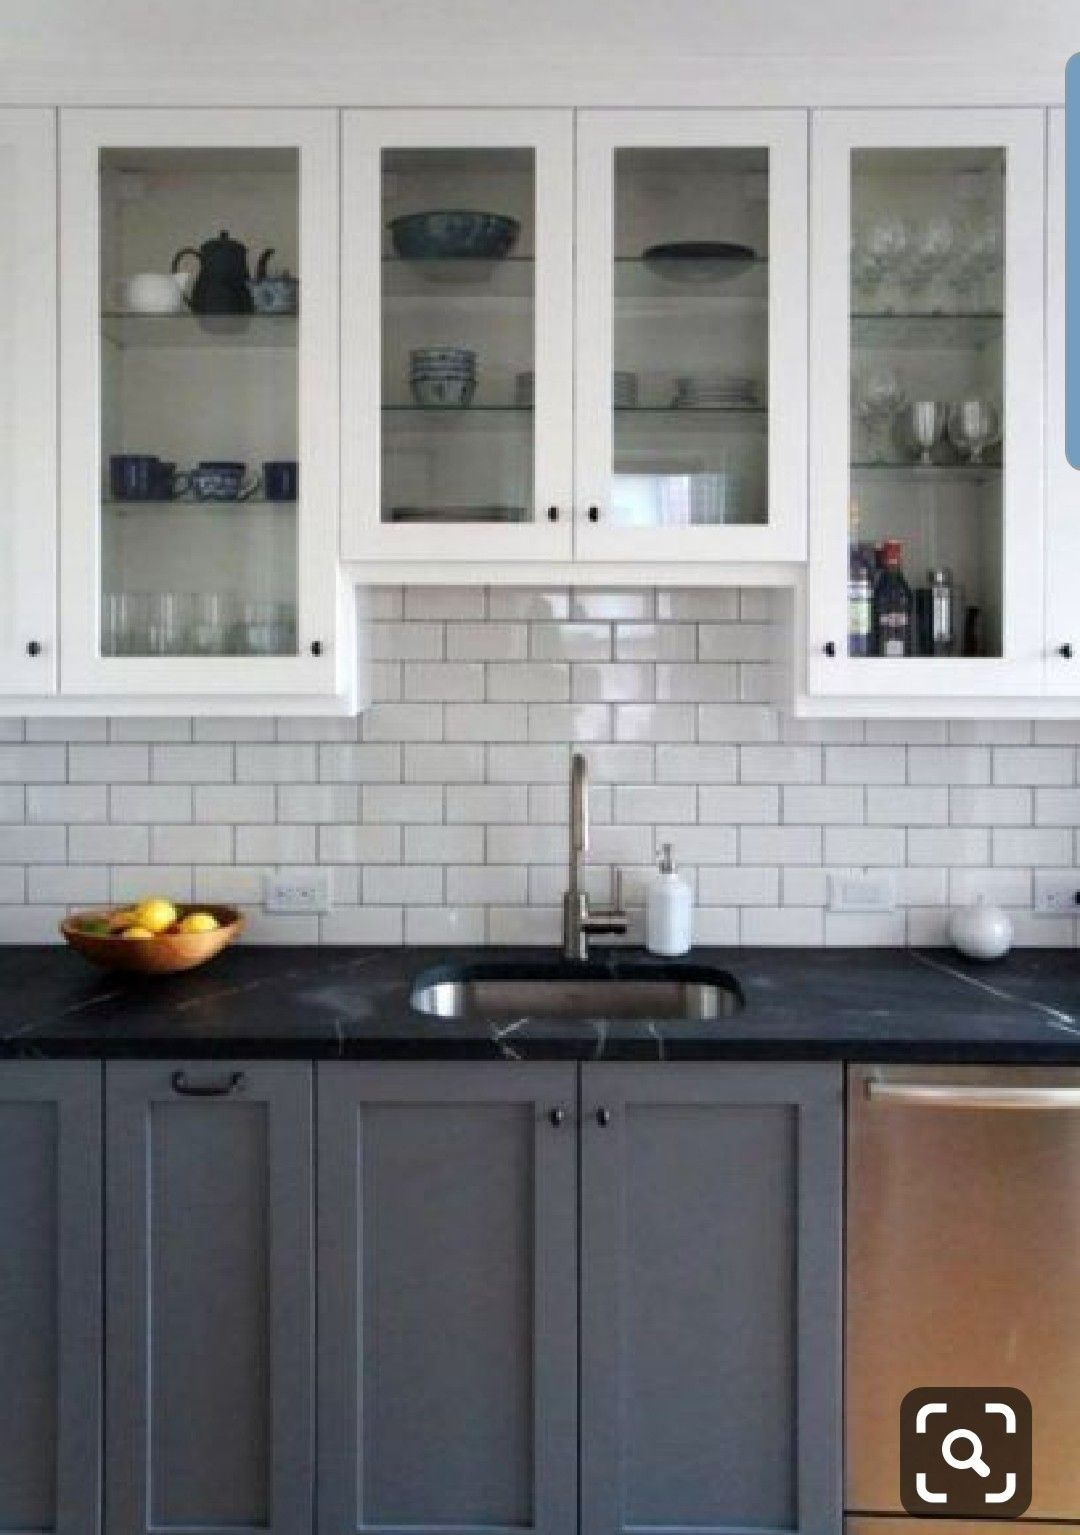 Pin By Danny Pendergast On Aaa Kitchen Colors Kitchen Cabinet Design Kitchen Cabinets Painted Grey New Kitchen Cabinets